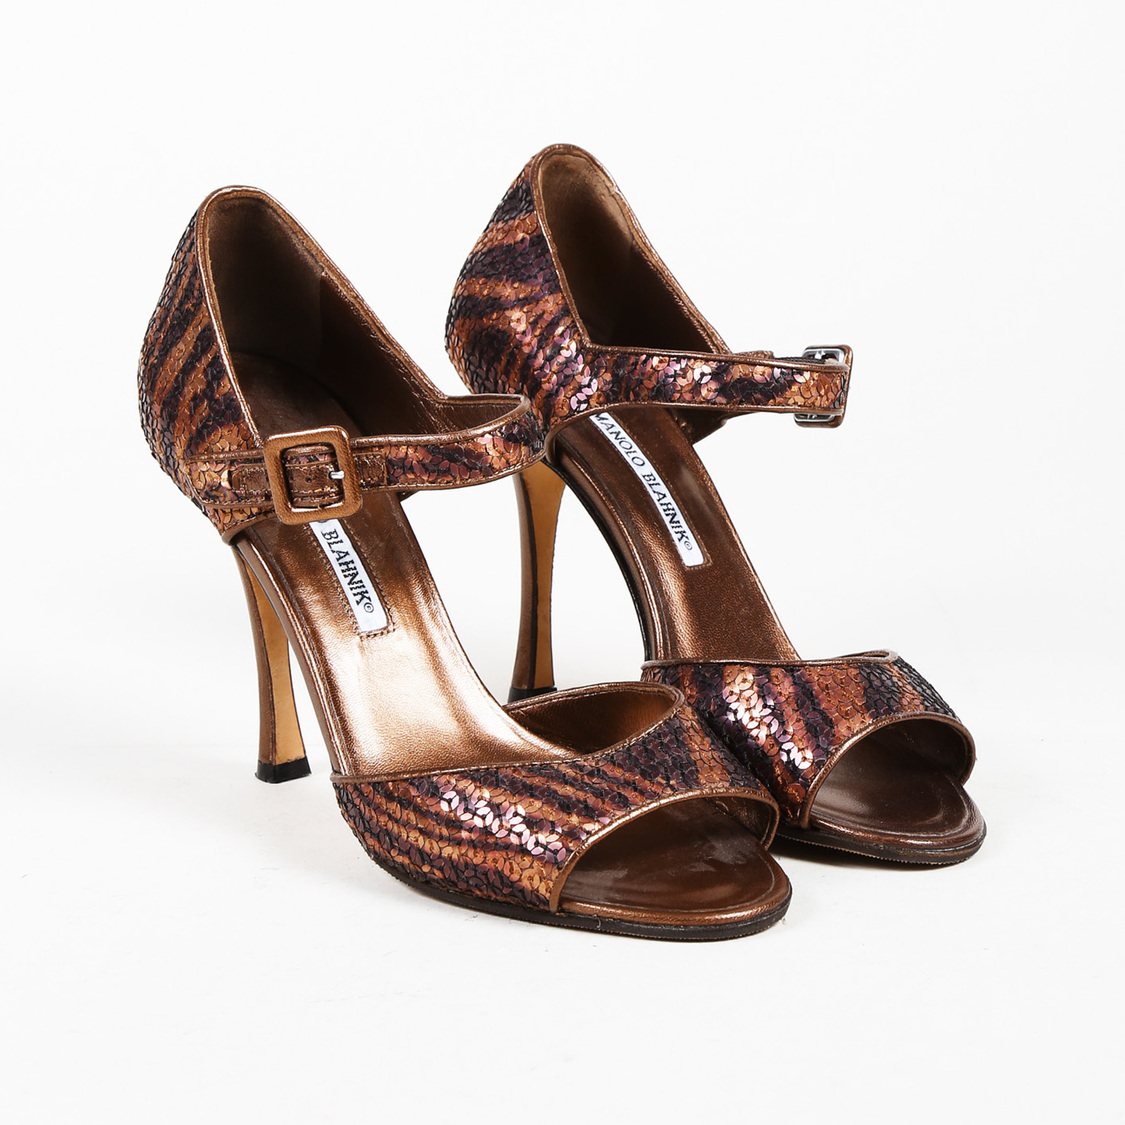 Details about Manolo Blahnik Brown Leather Sequined Animal Print Peep Toe  Pumps SZ 38 b3446d443